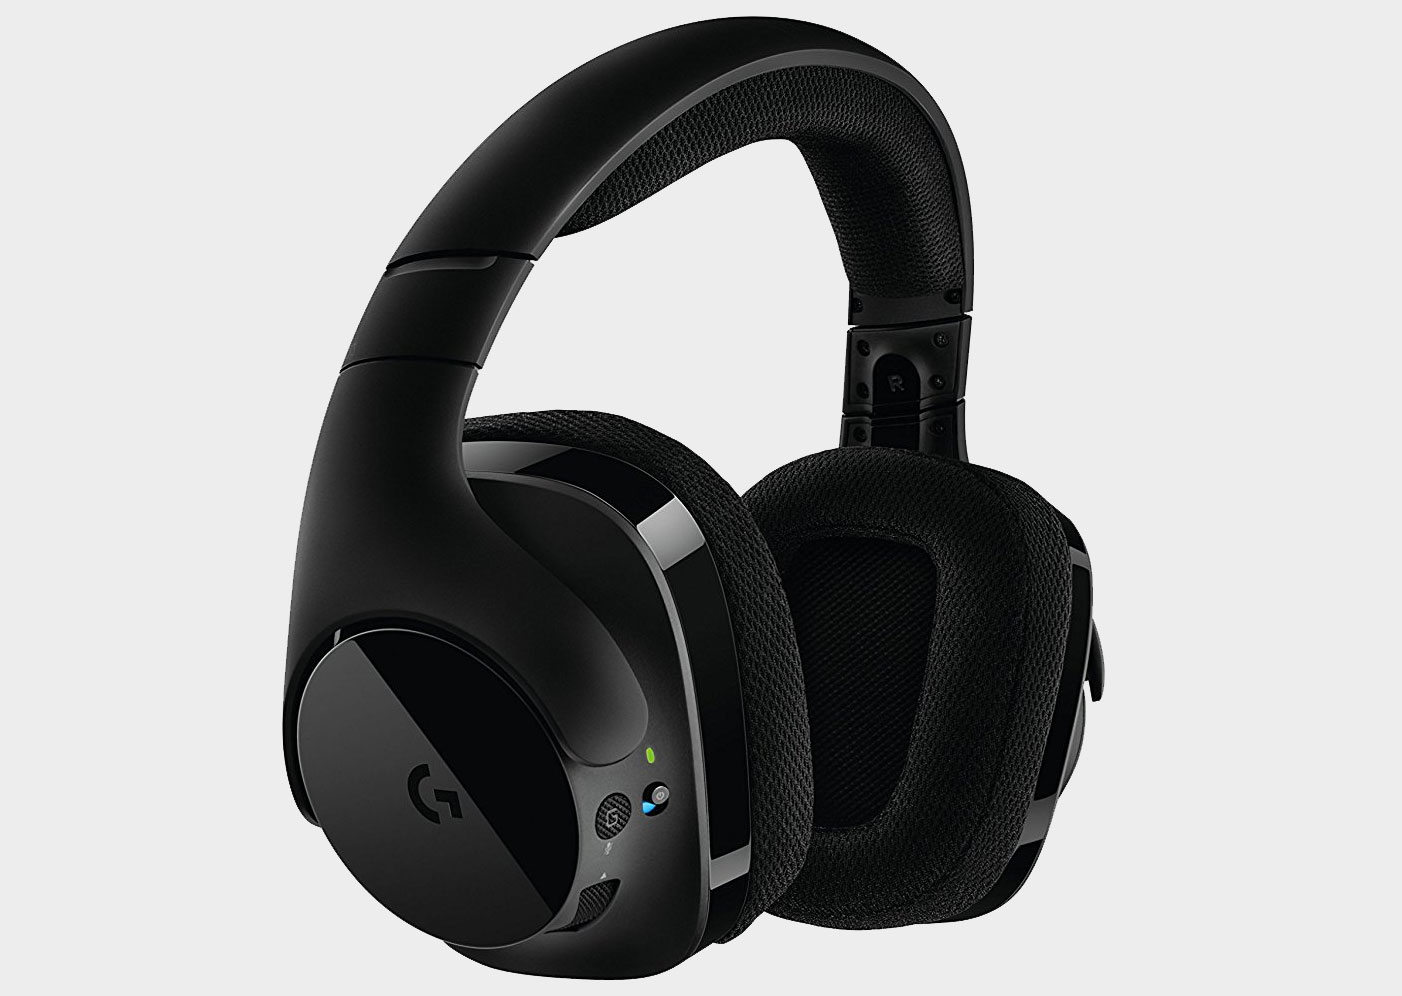 This wireless gaming headset with 7.1 surround sound is on sale for $65